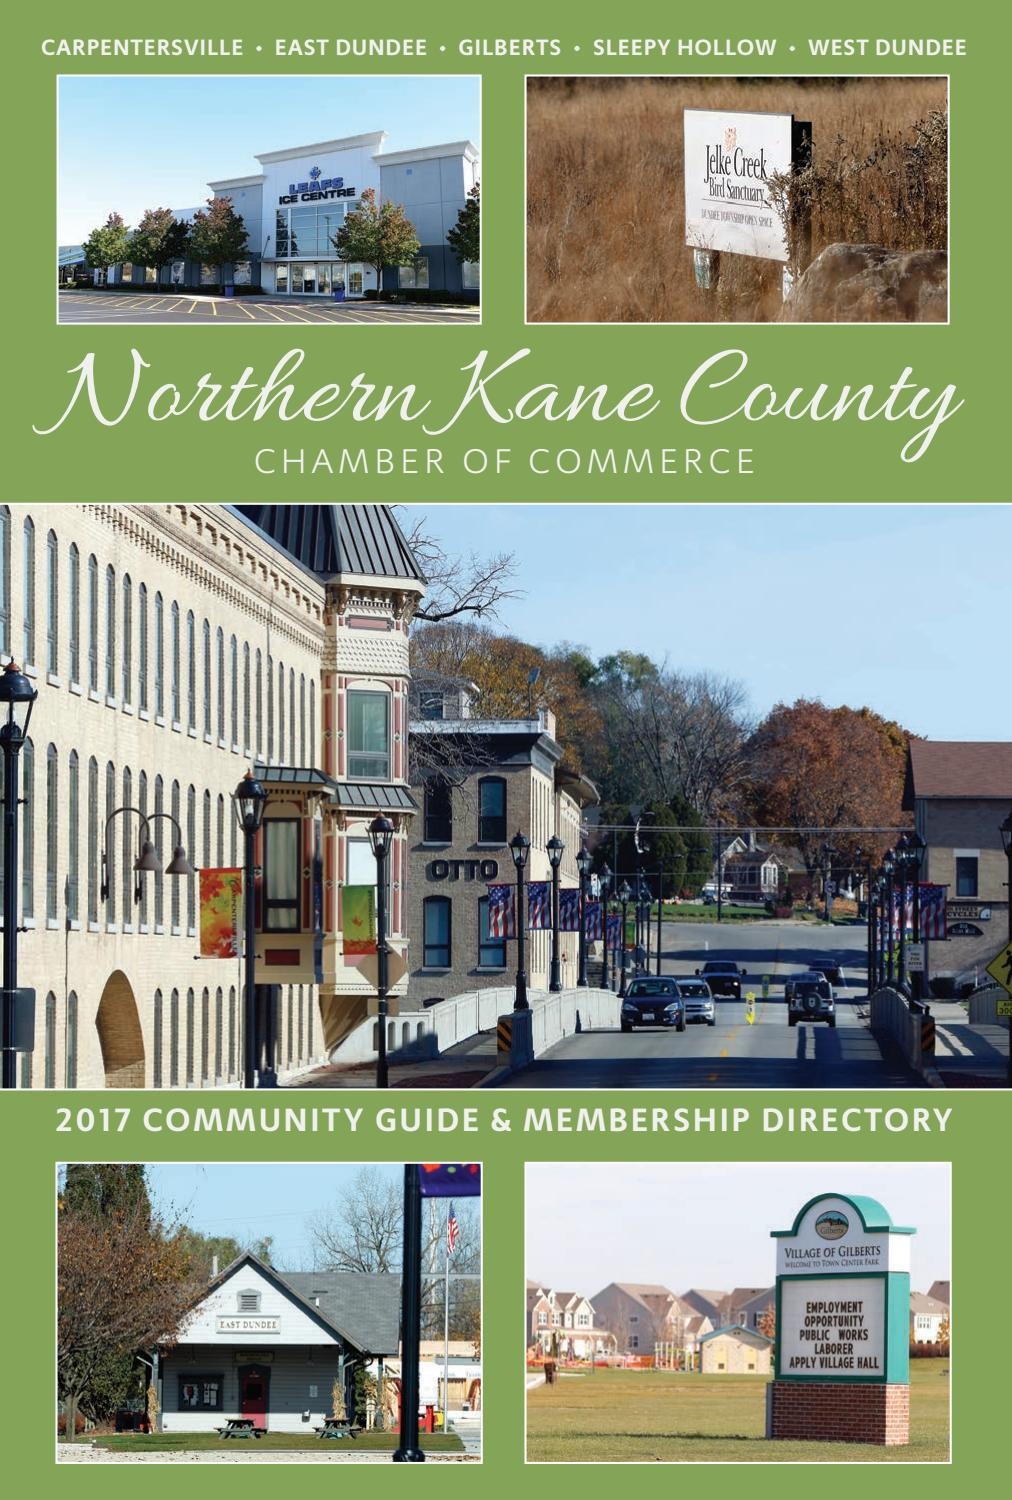 Illinois kane county carpentersville - Northern Kane County Il Chamber Profile 2017 By Town Square Publications Llc Issuu